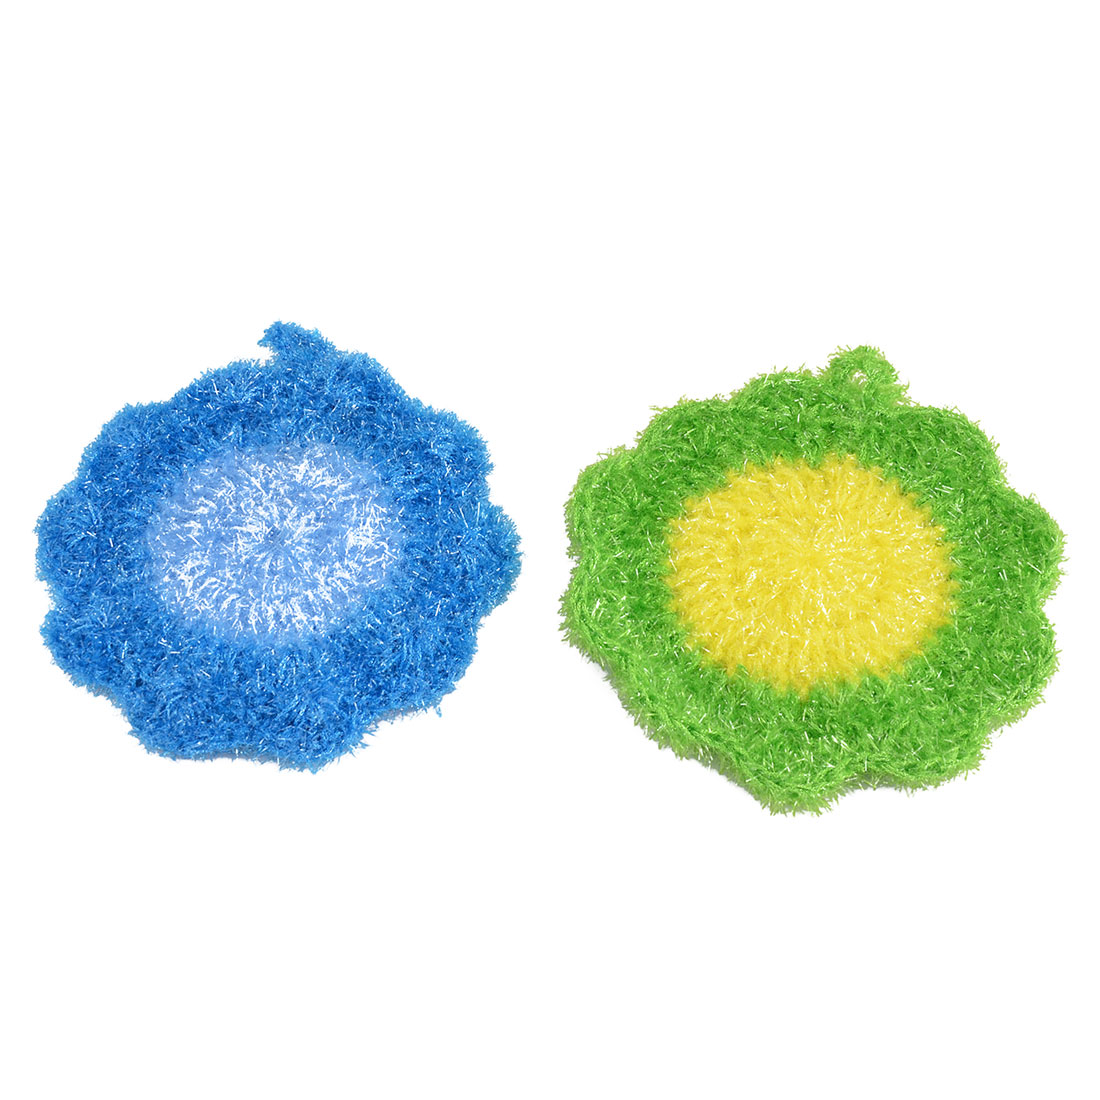 Household Nylon Flower Shaped Kitchenware Bowl Spoon Plate Cleaning Pad Green Blue 2 Pcs